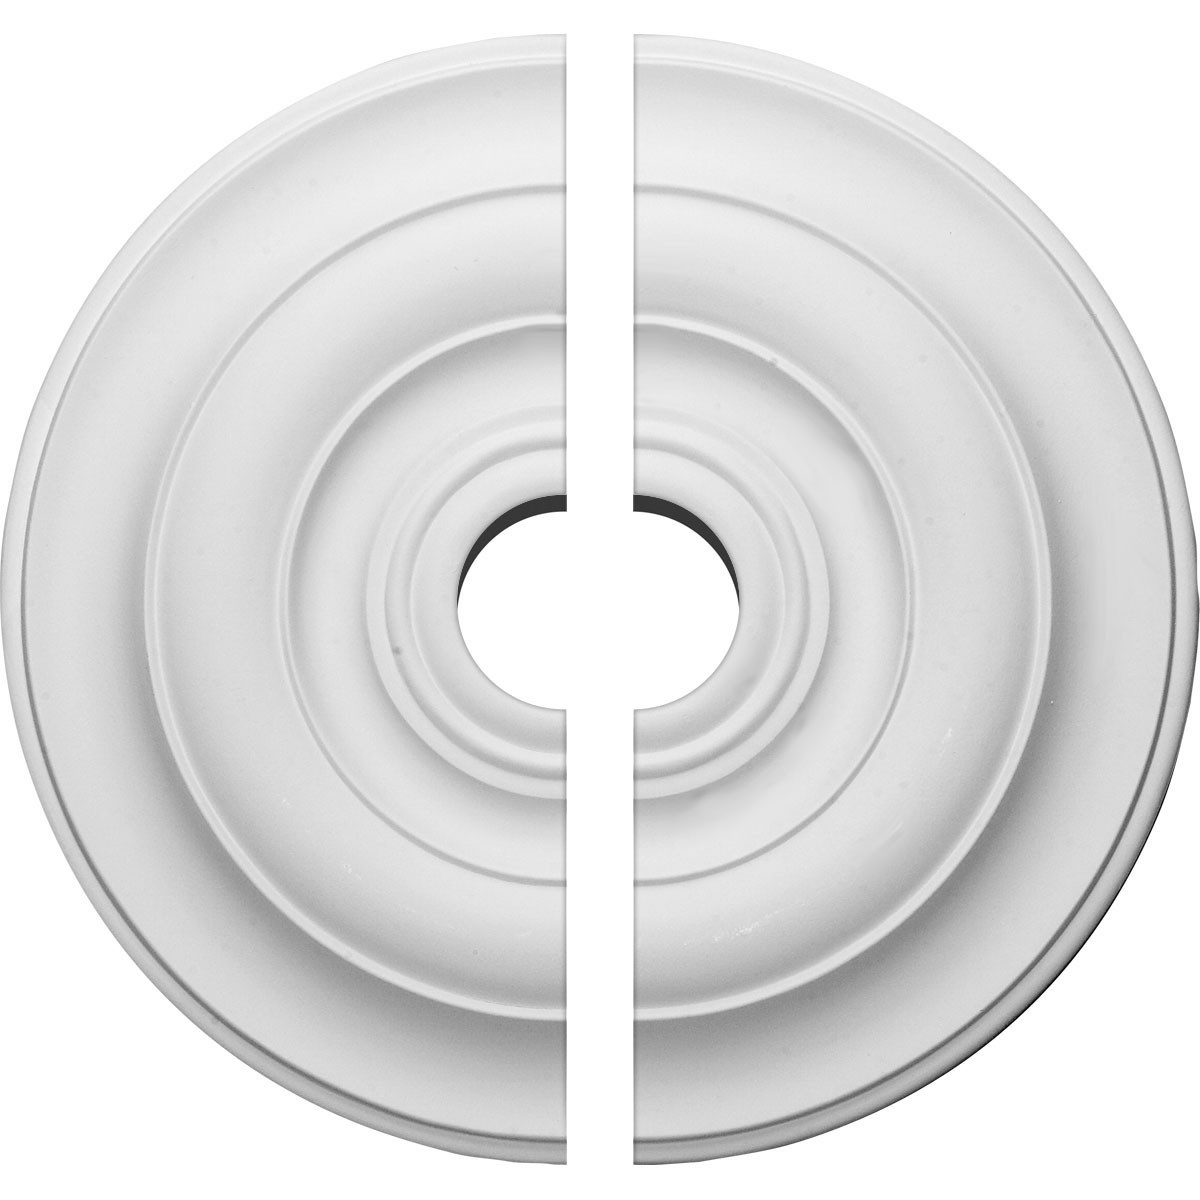 "EM-CM18NI2-03500 - 18""OD x 3 1/2""ID x 1 1/2""P Niobe Ceiling Medallion, Two Piece (Fits Canopies up to 8 5/8"")"